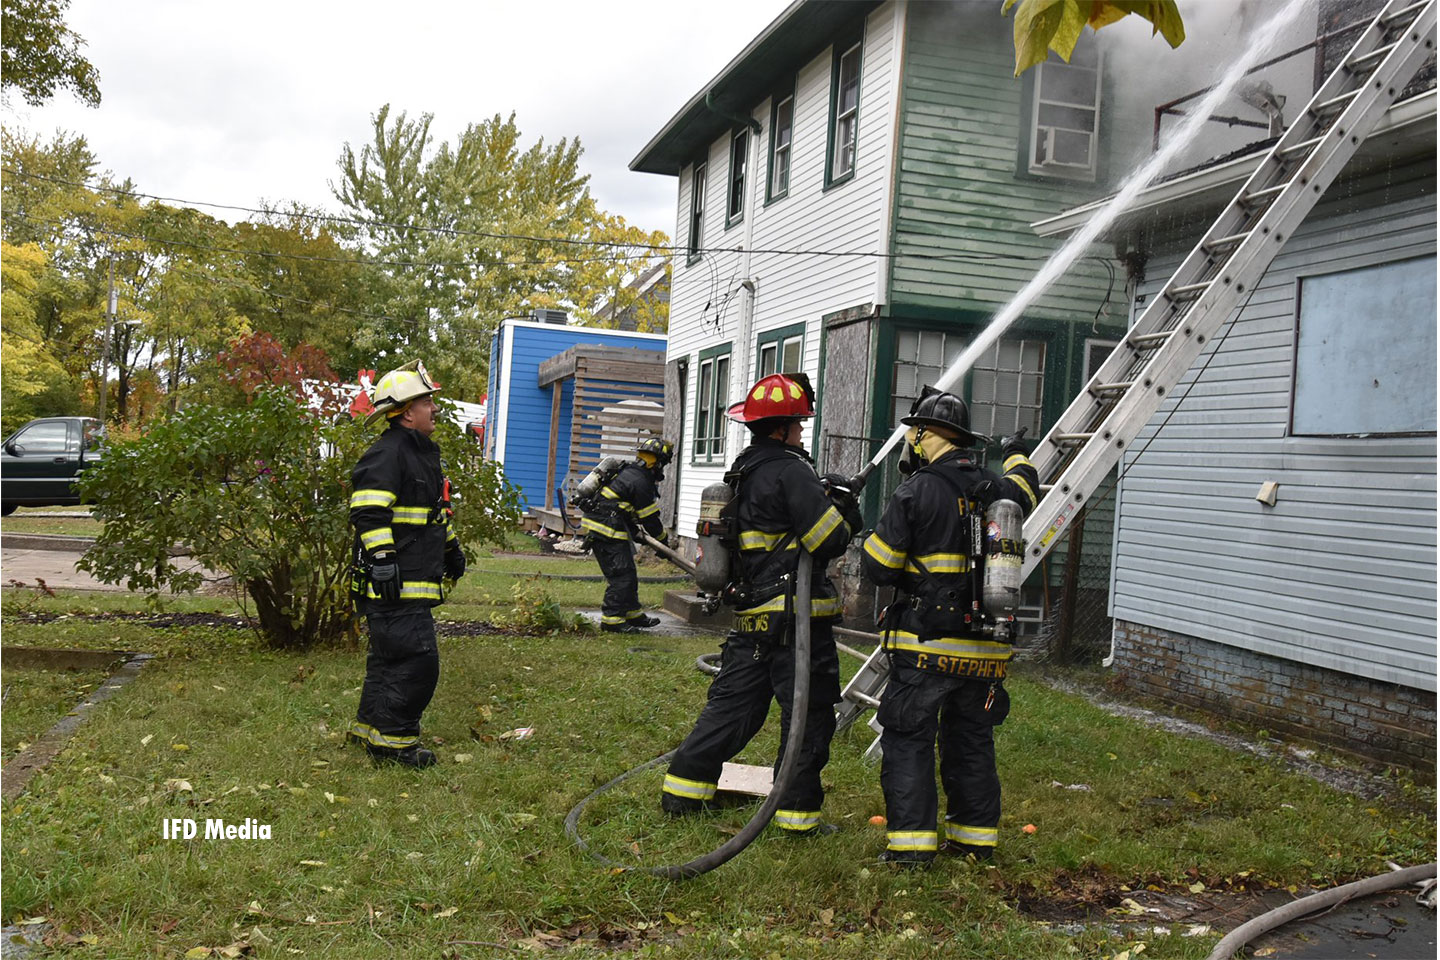 Firefighters operate a hoseline and a ladder at the fire.